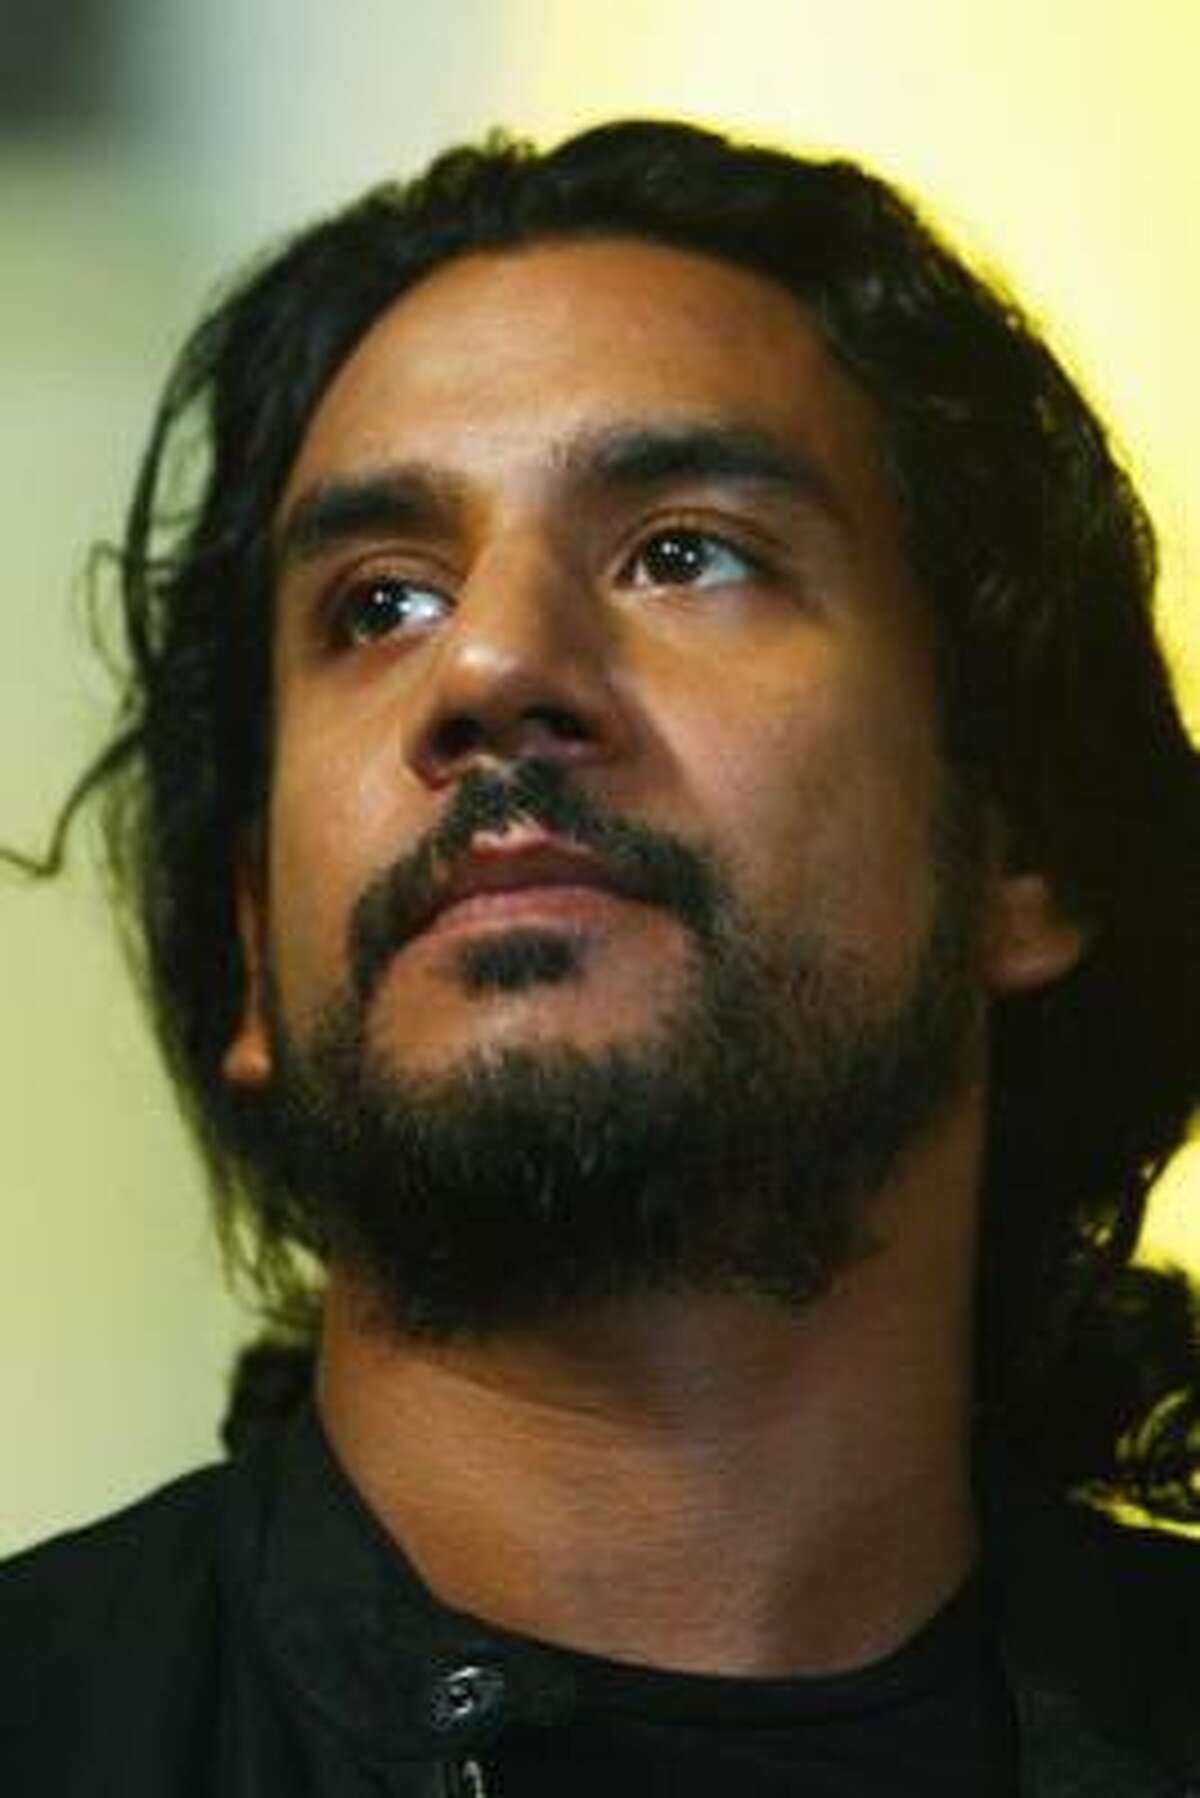 Sayid learned how to torture from...